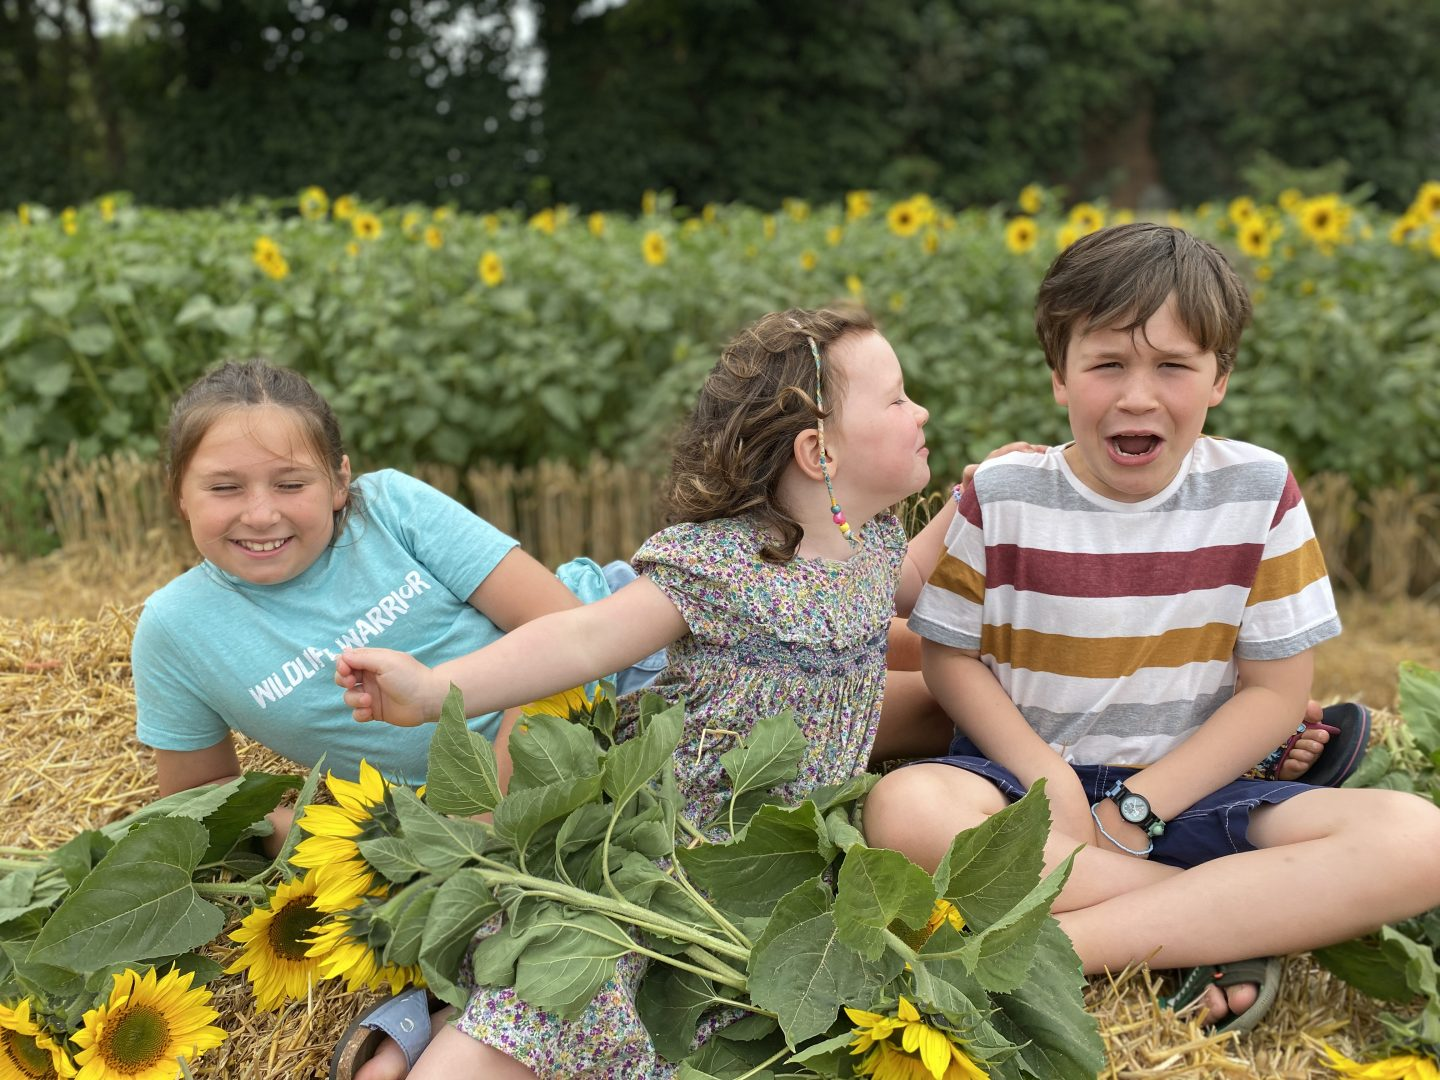 Sunflower field in York with 3 children  on a hay bale